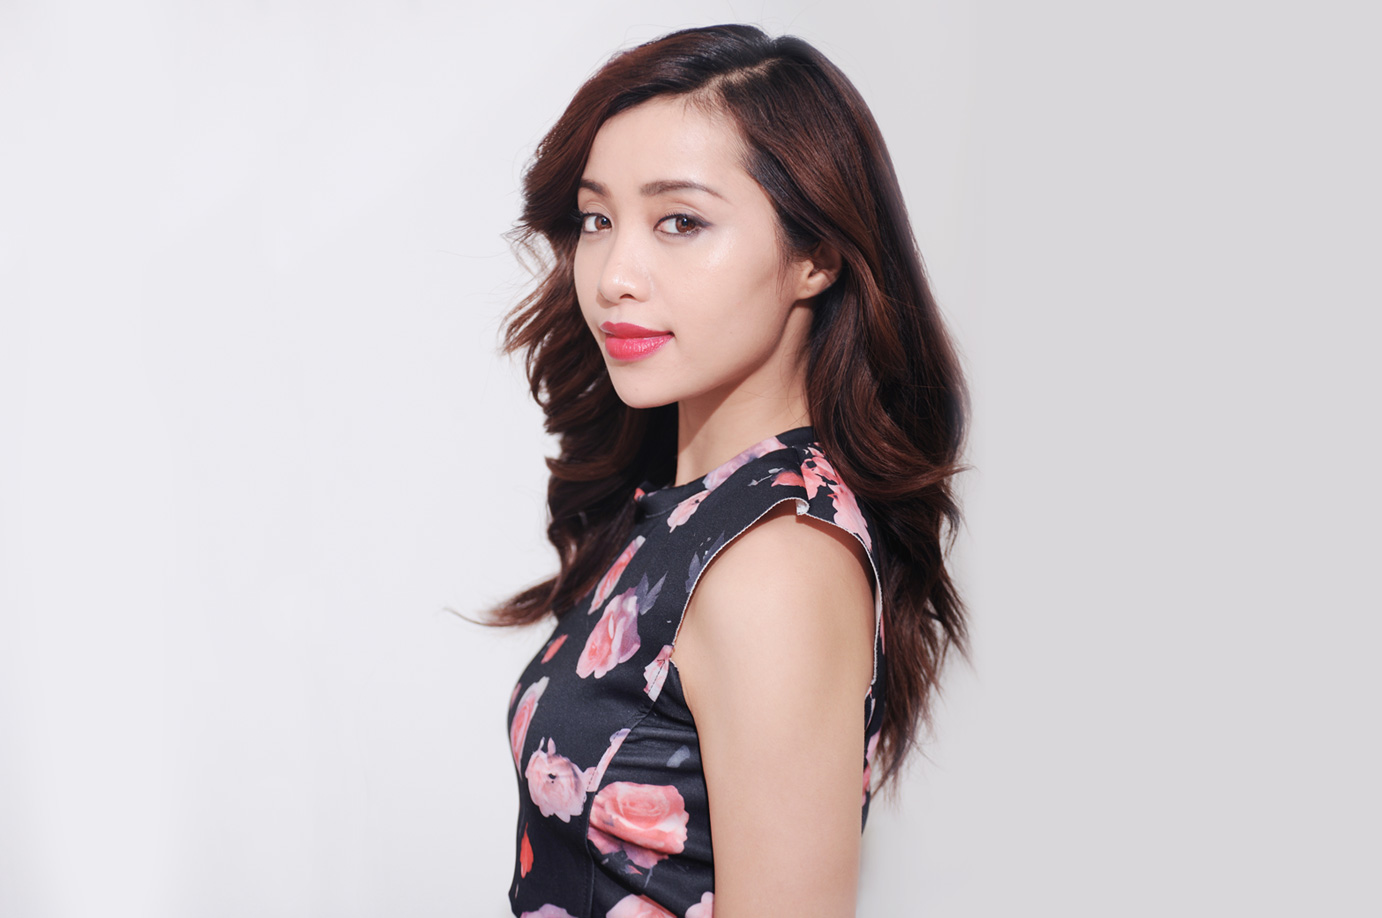 Beauty Blogging with Michelle Phan